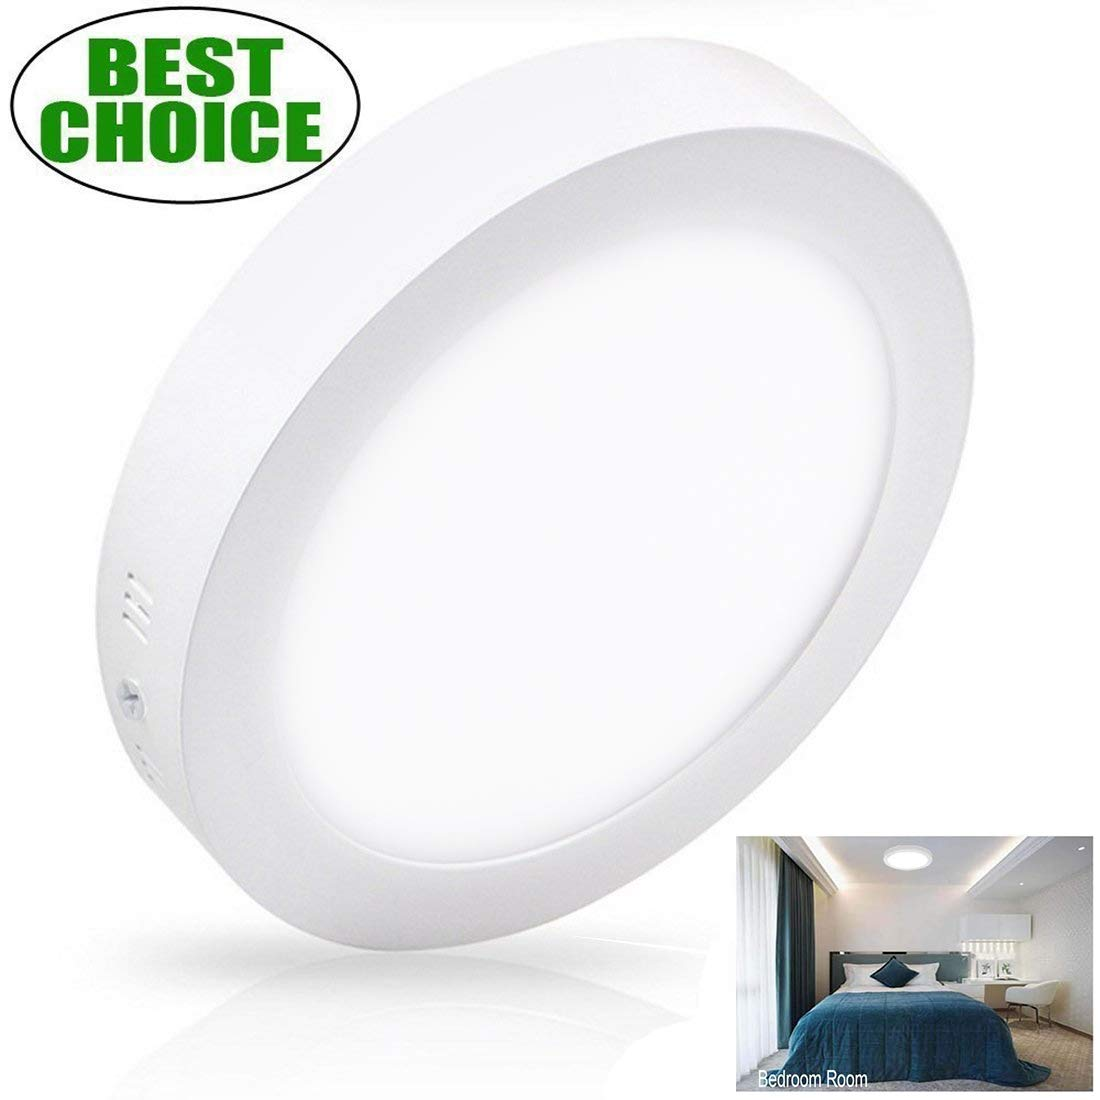 W-LITE 11.81 Inch 24W LED Panel Wall Ceiling Down Lights, Panel Lamp Mount Surface, Round, 5000K/Daylight White, AC 86-265V, 160W Halogen Bulb Equivalent, [Energy Class A+] (24W-1 pack)